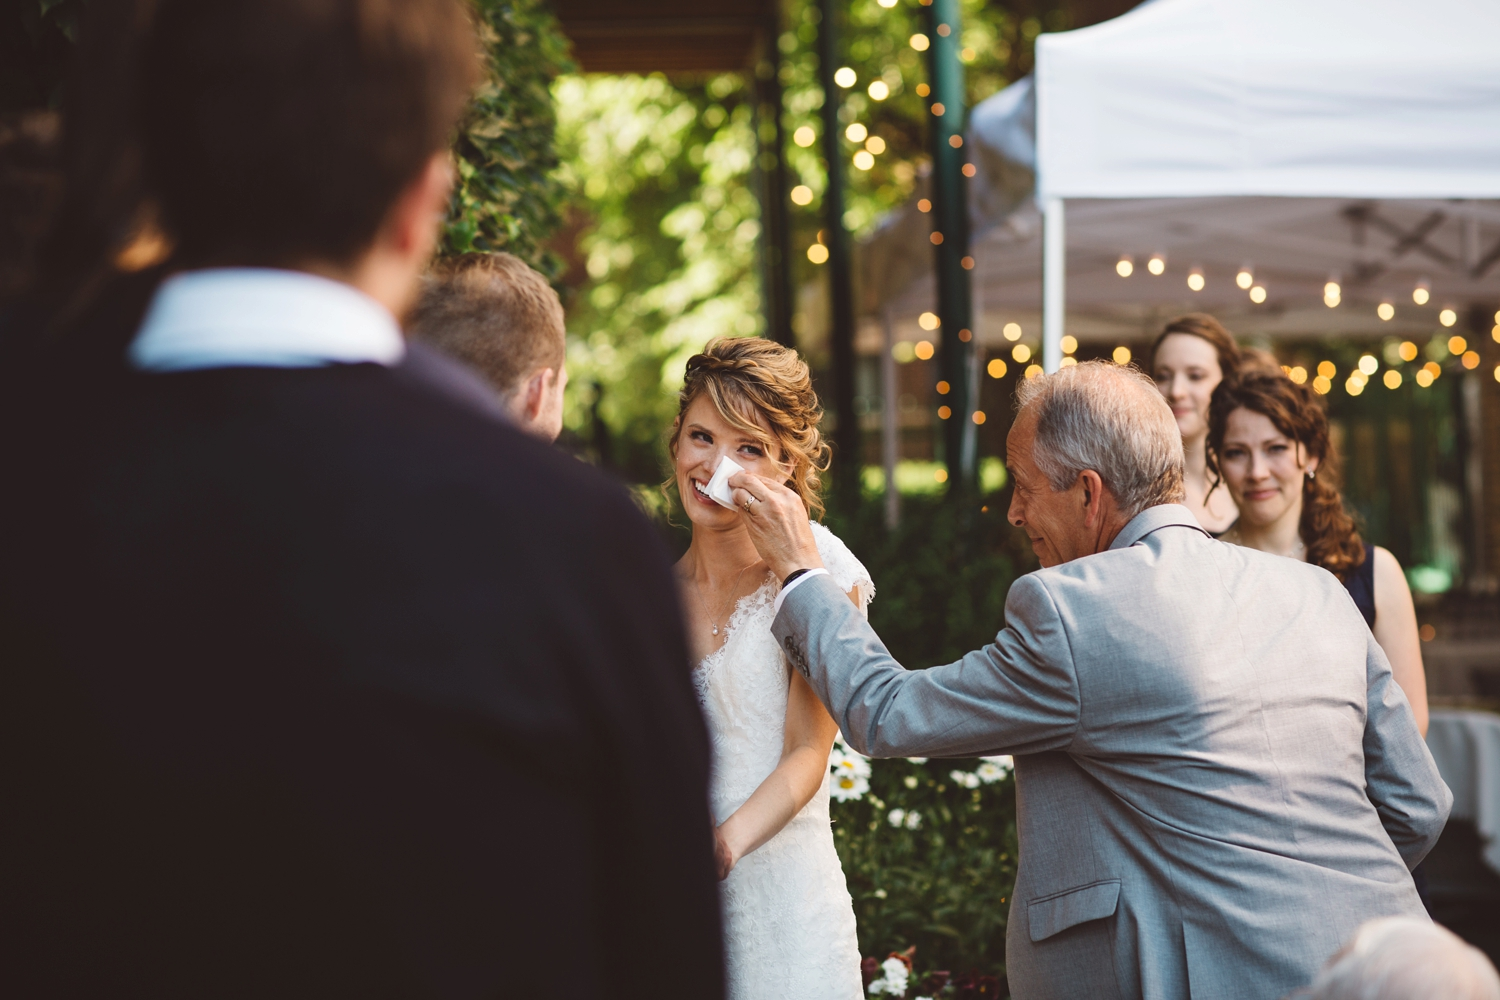 dad wiping tears for bride